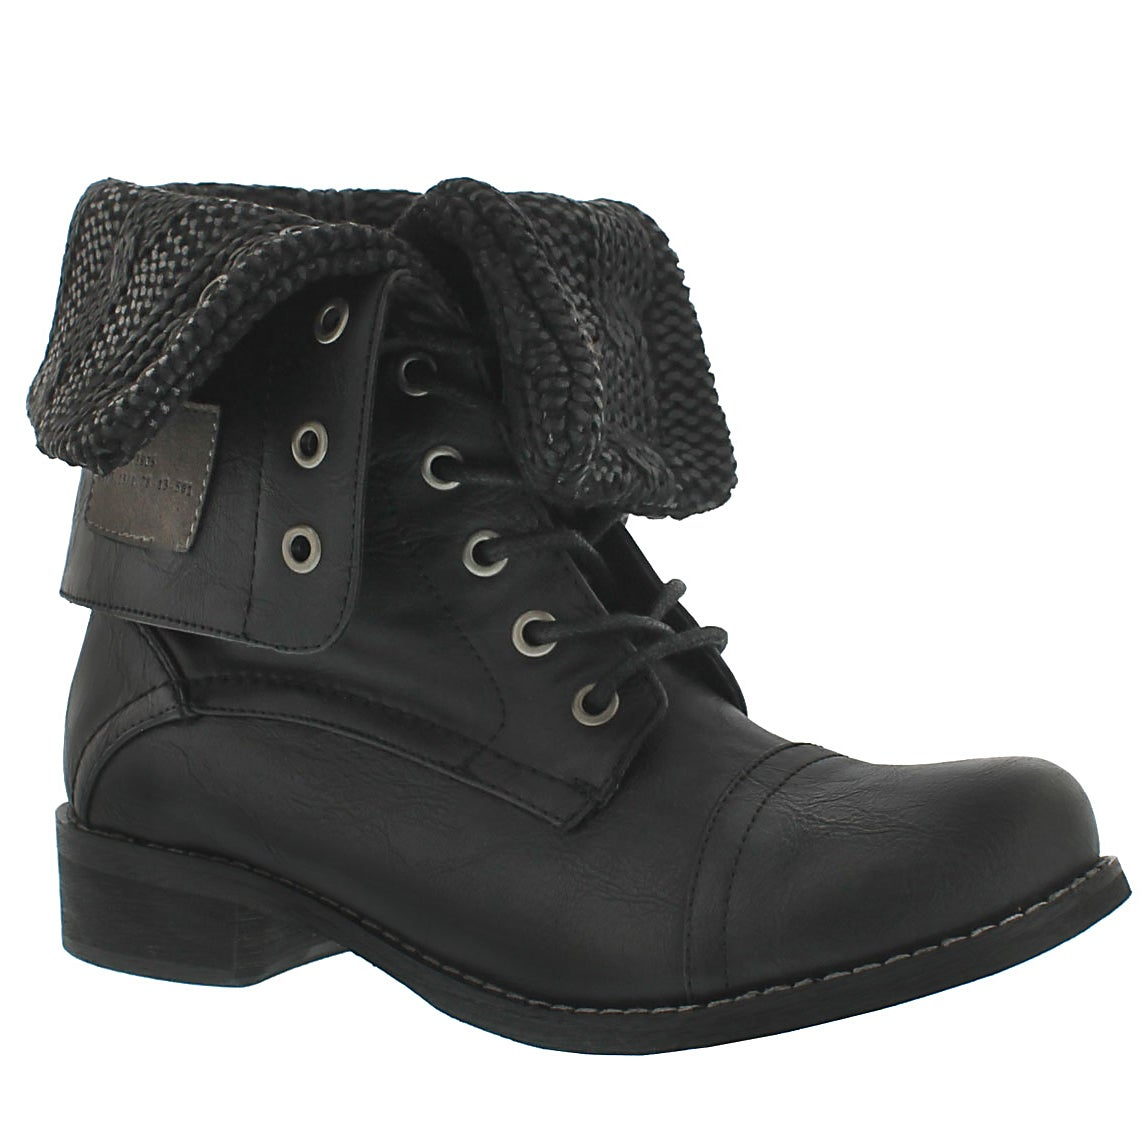 Lds Bev blk lace up fold dwn combat boot